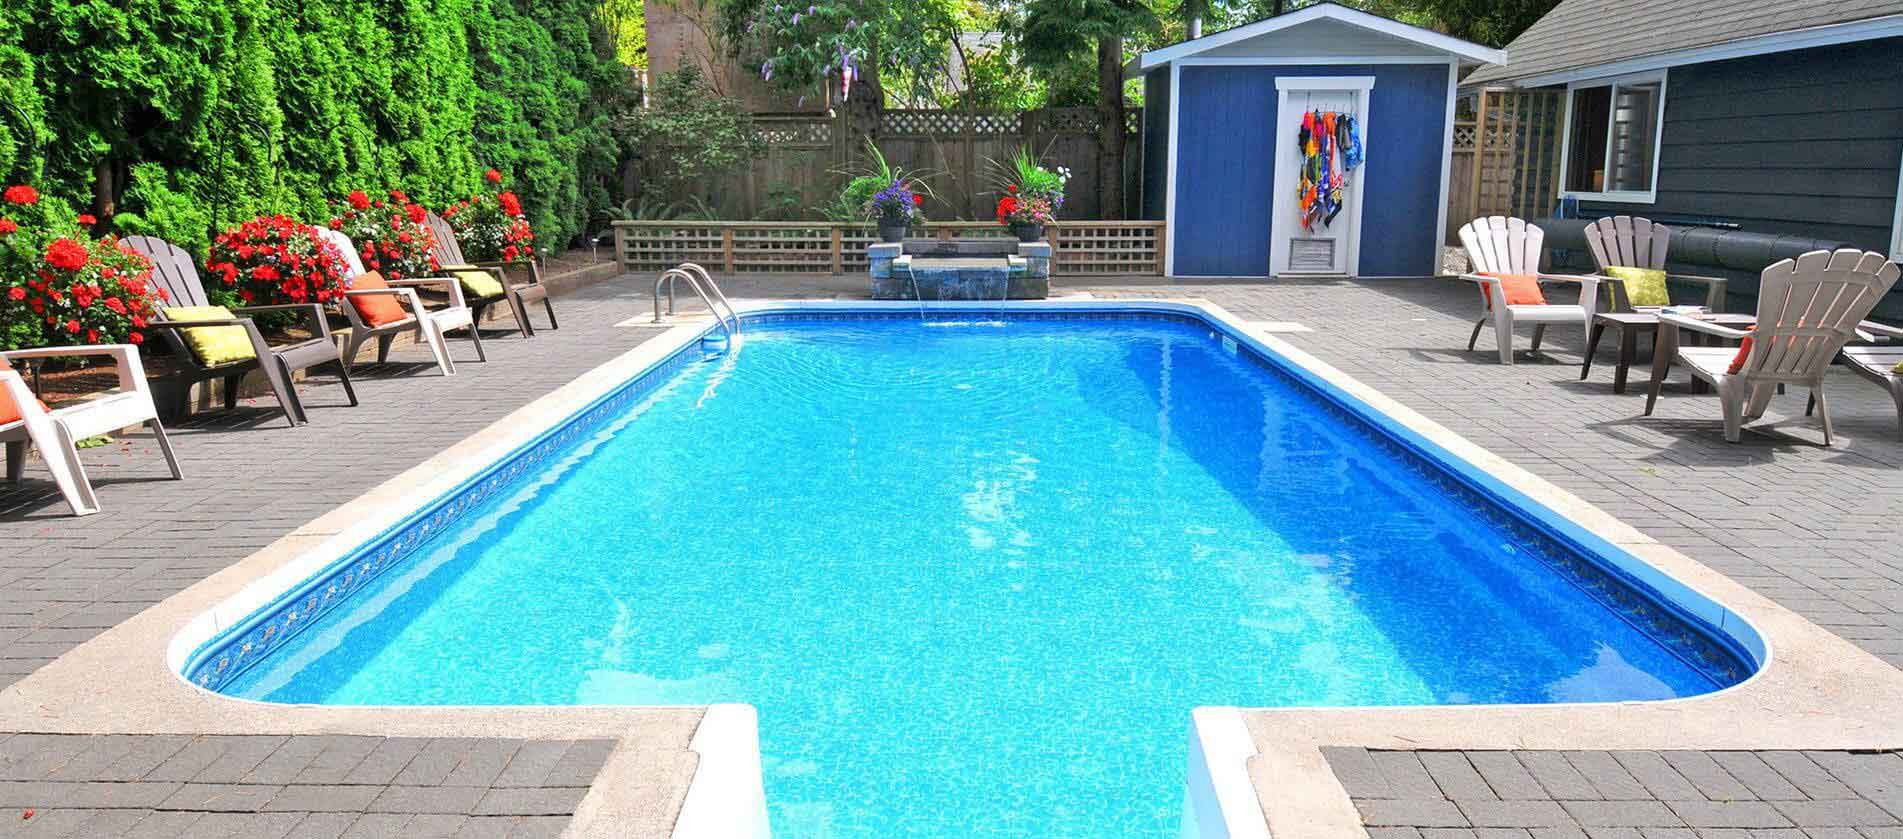 Monarch pools spas totowa nj swimming pool contractor for Pool gallery